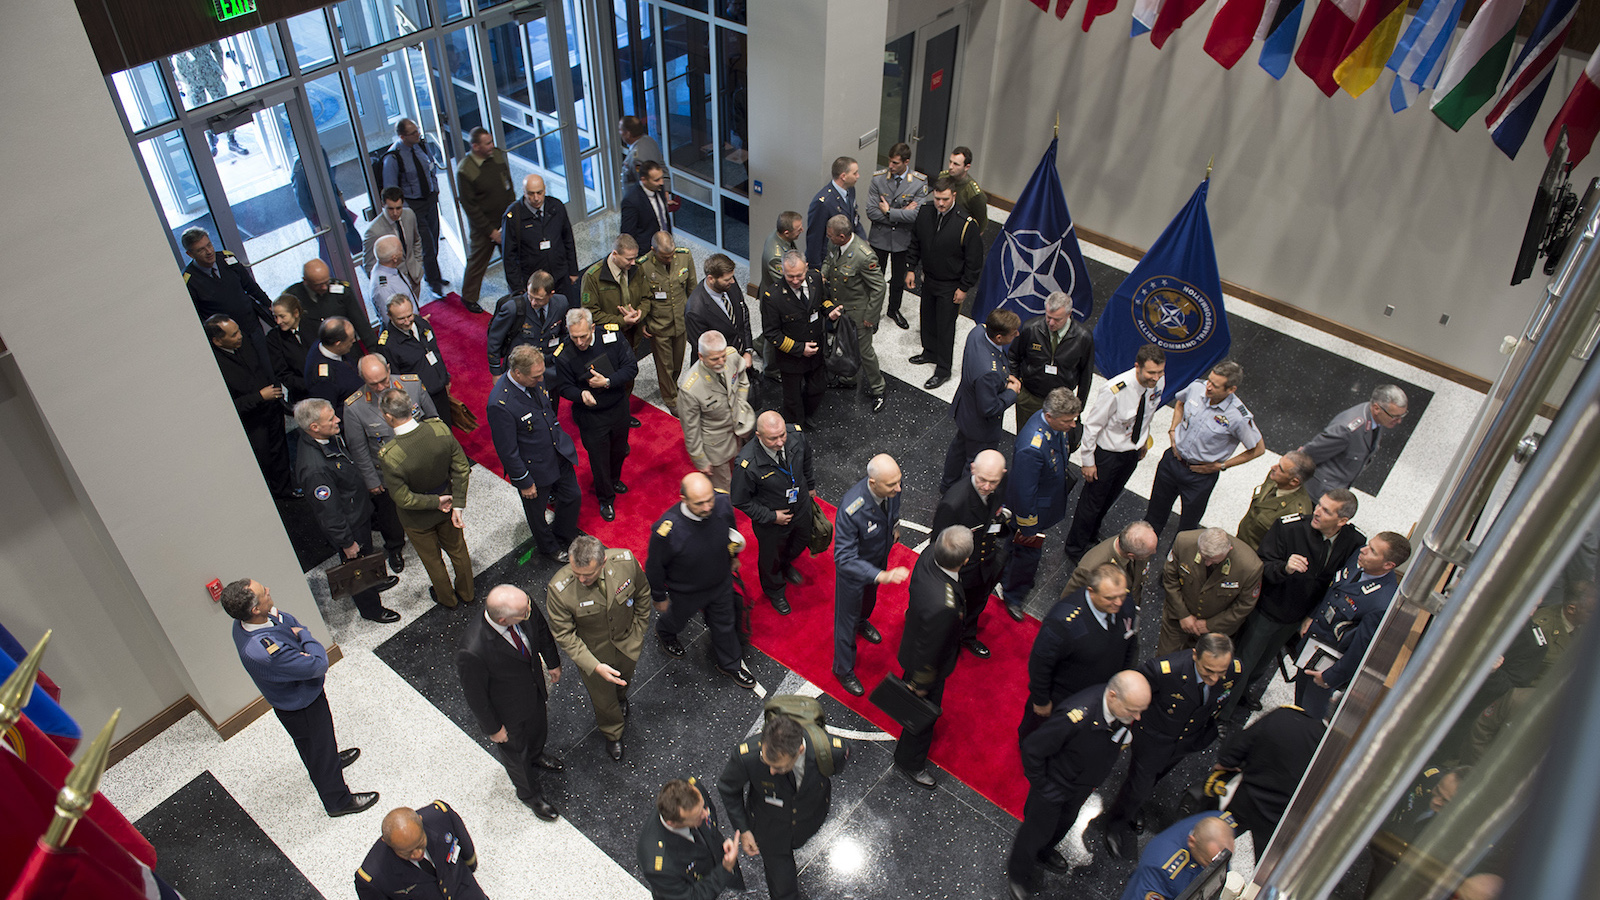 NATO's Military Committee visits NATO's home in the United States